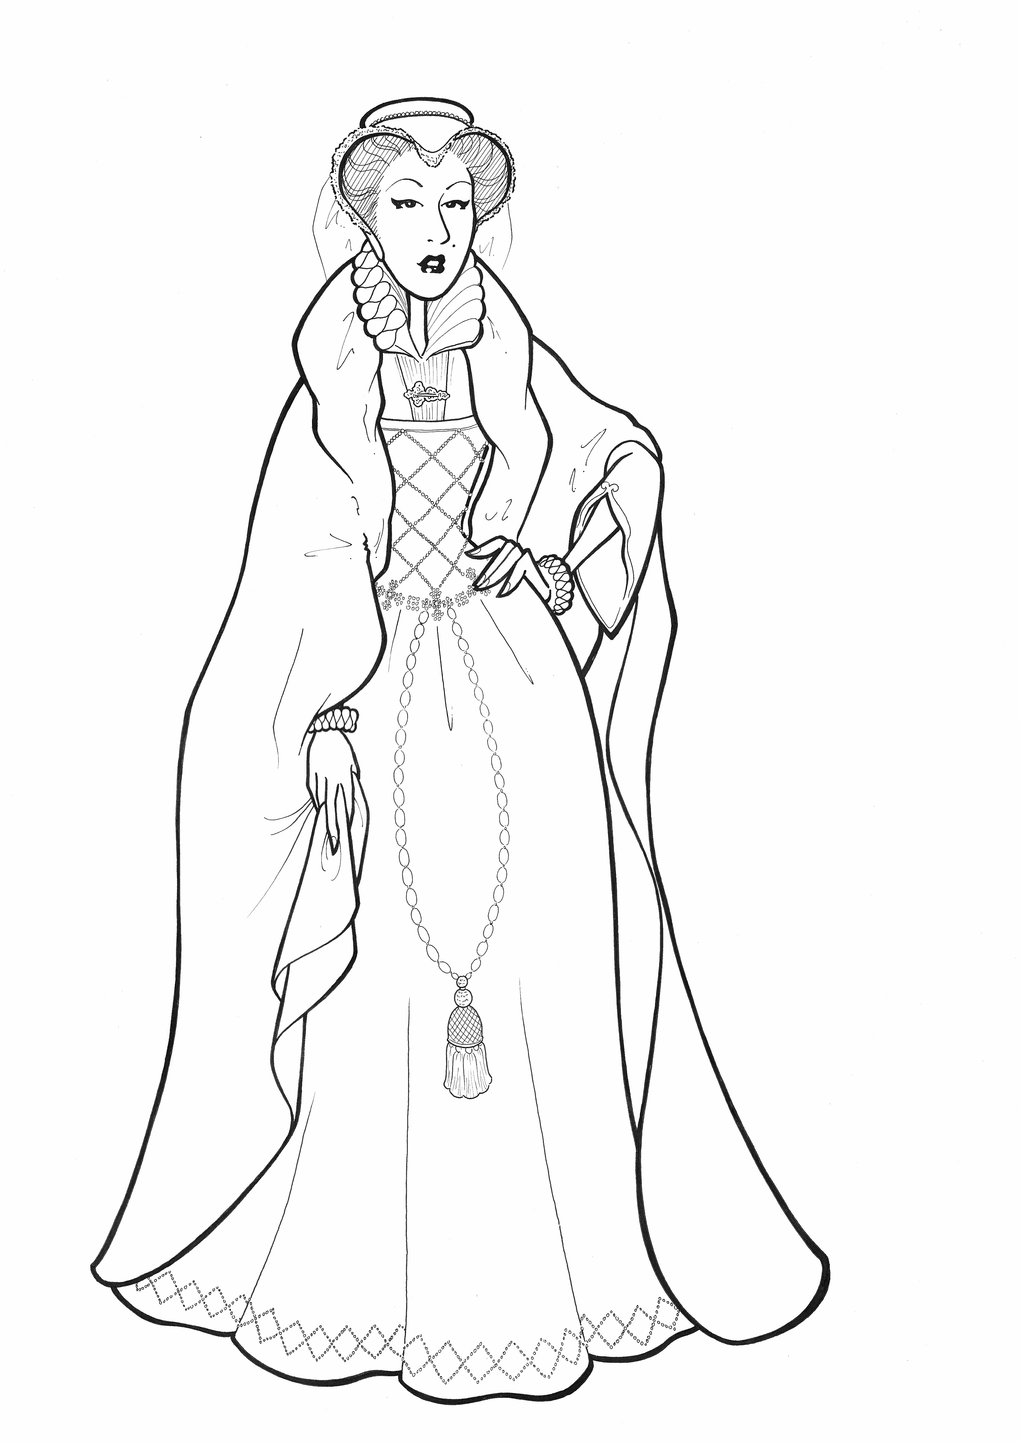 esther coloring pages - Mary Stuart Queen of Scots